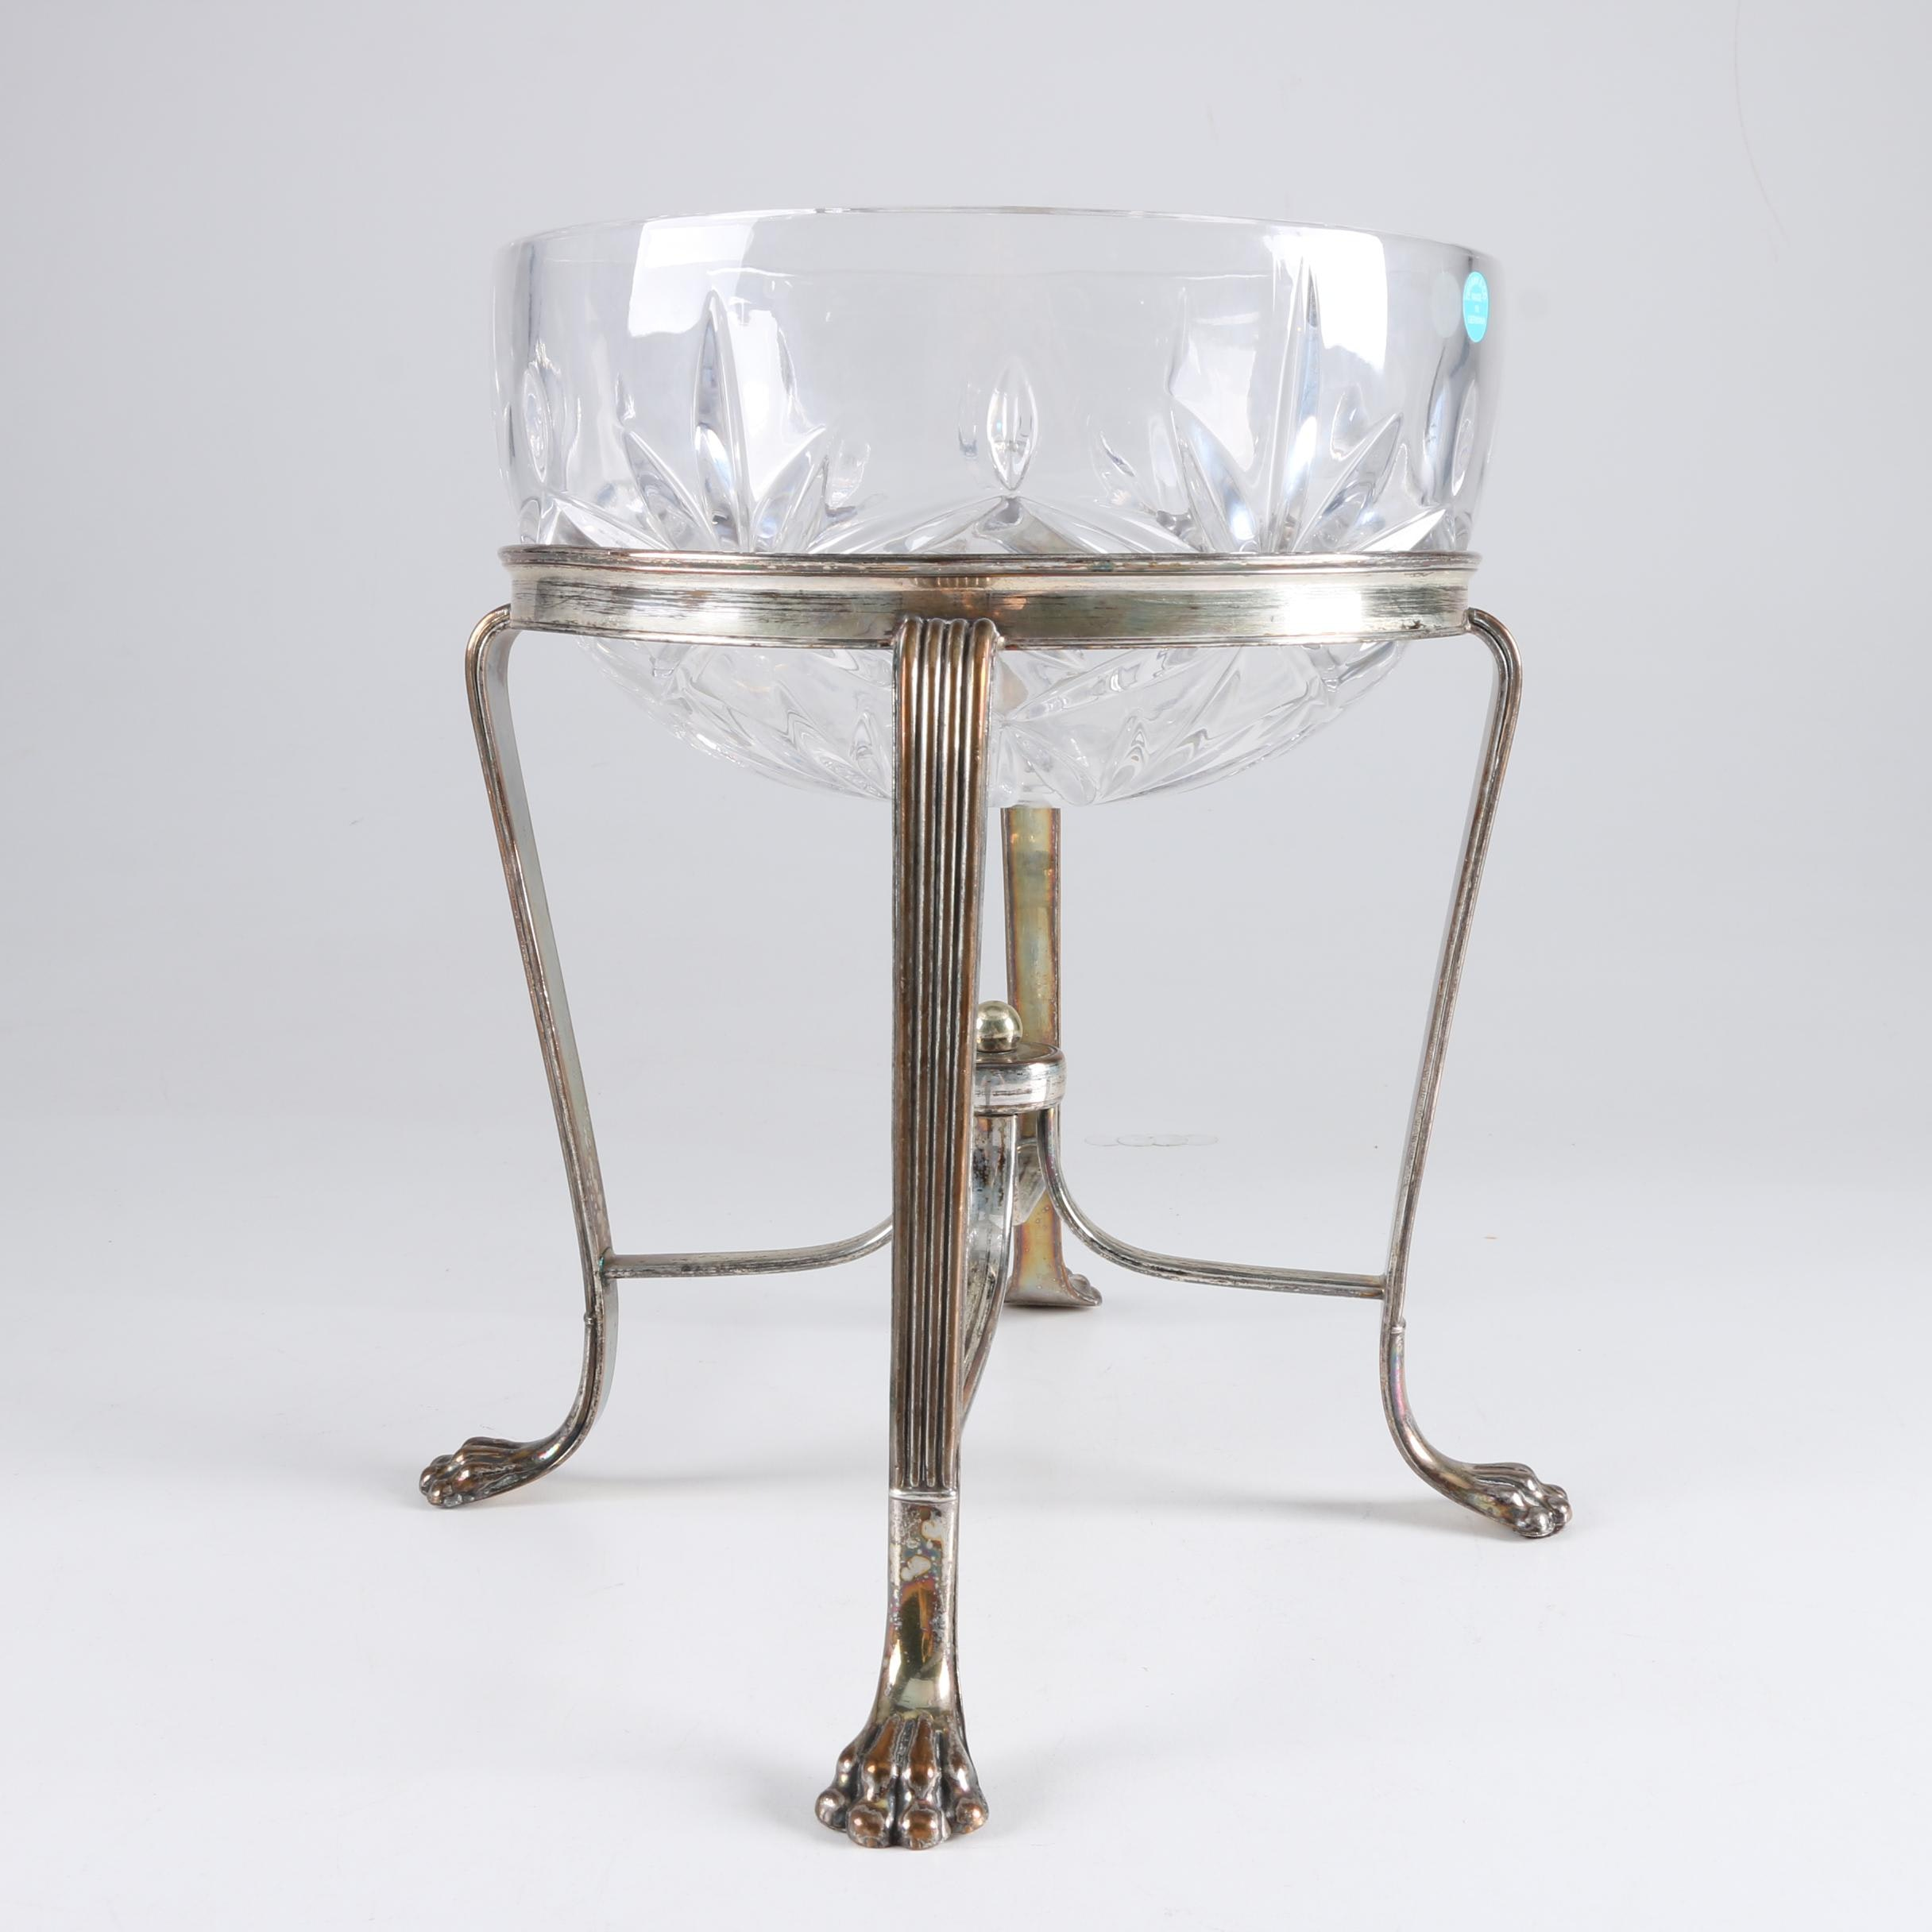 Tiffany & Co. Crystal Bowl with Stand